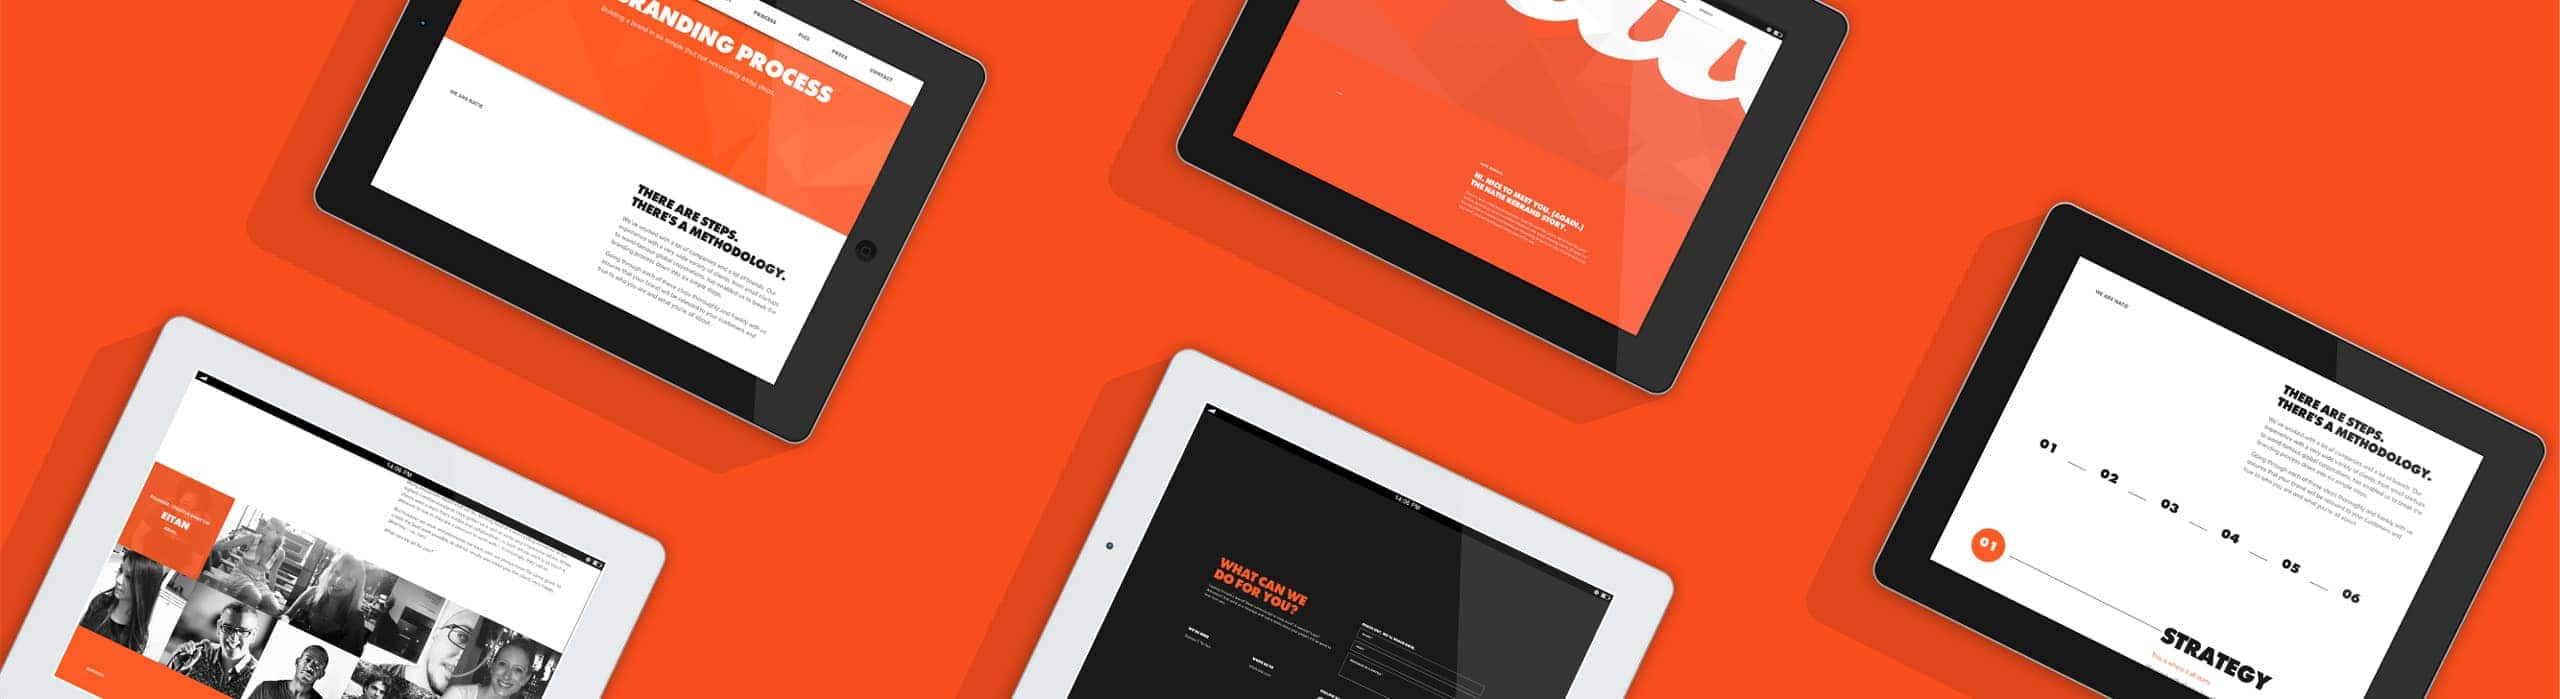 Natie - natie-rebrand-website - Natie Branding Agency